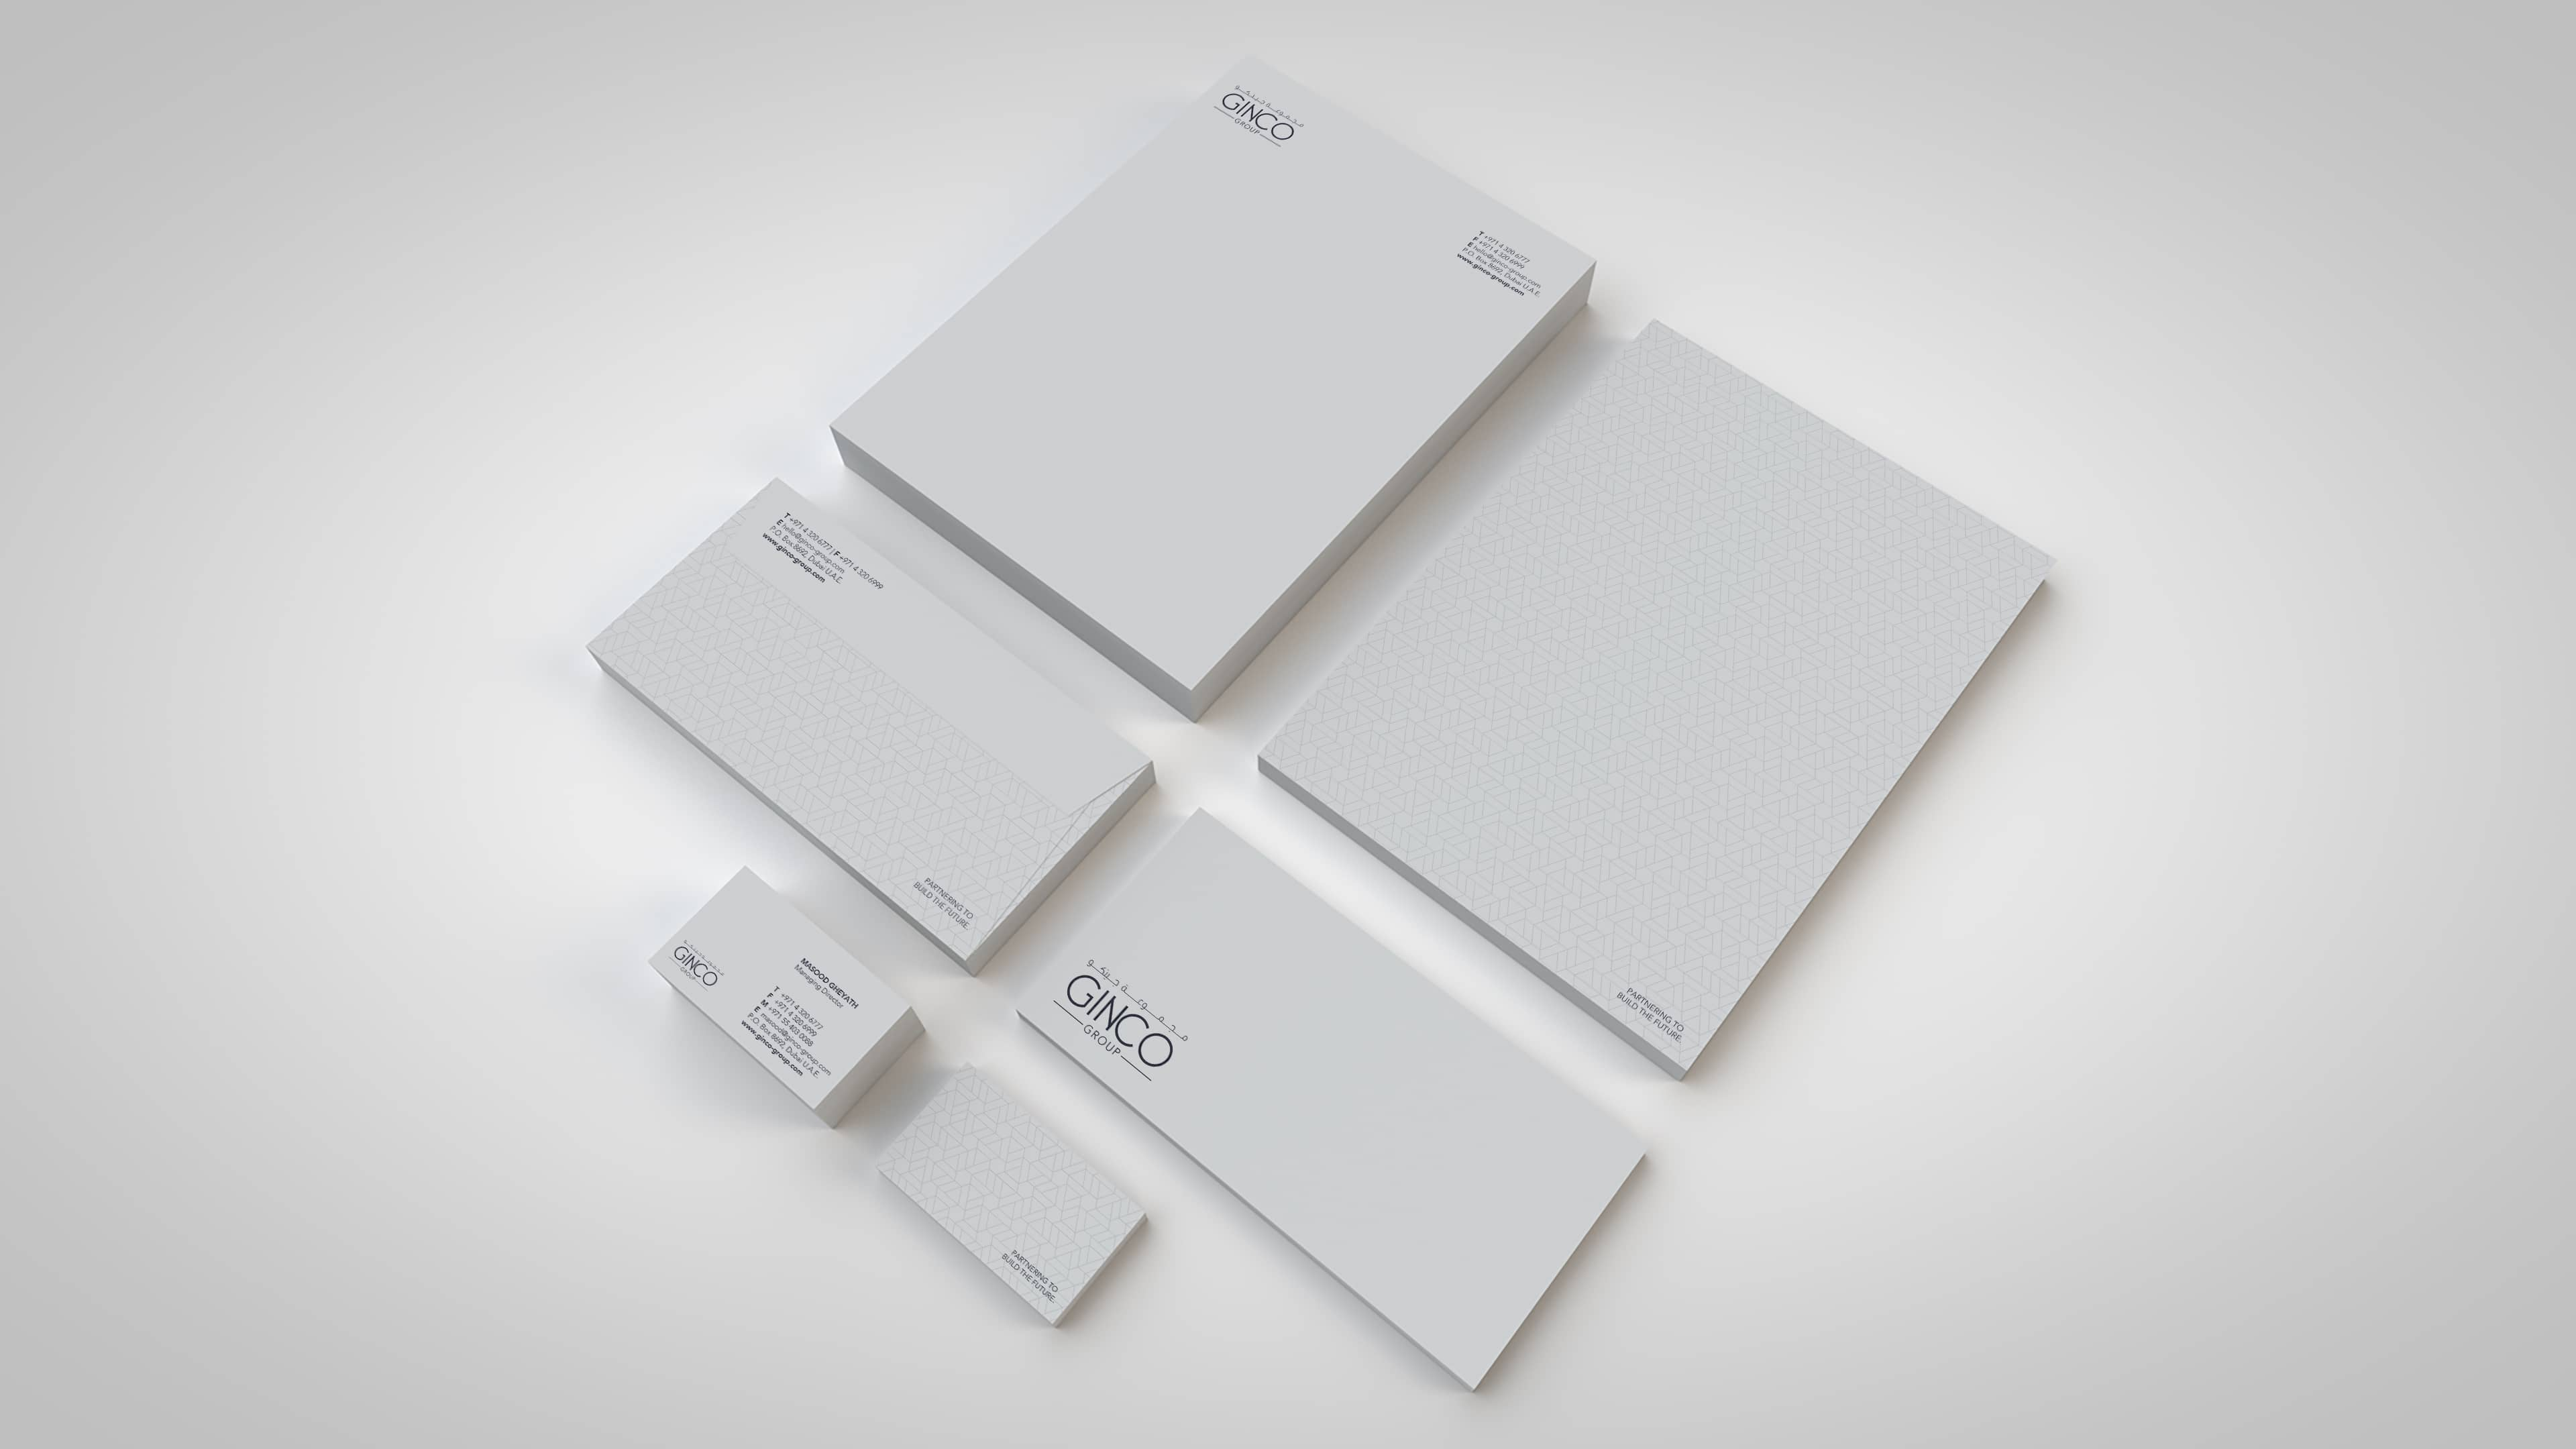 GINCO-Group-Stationery